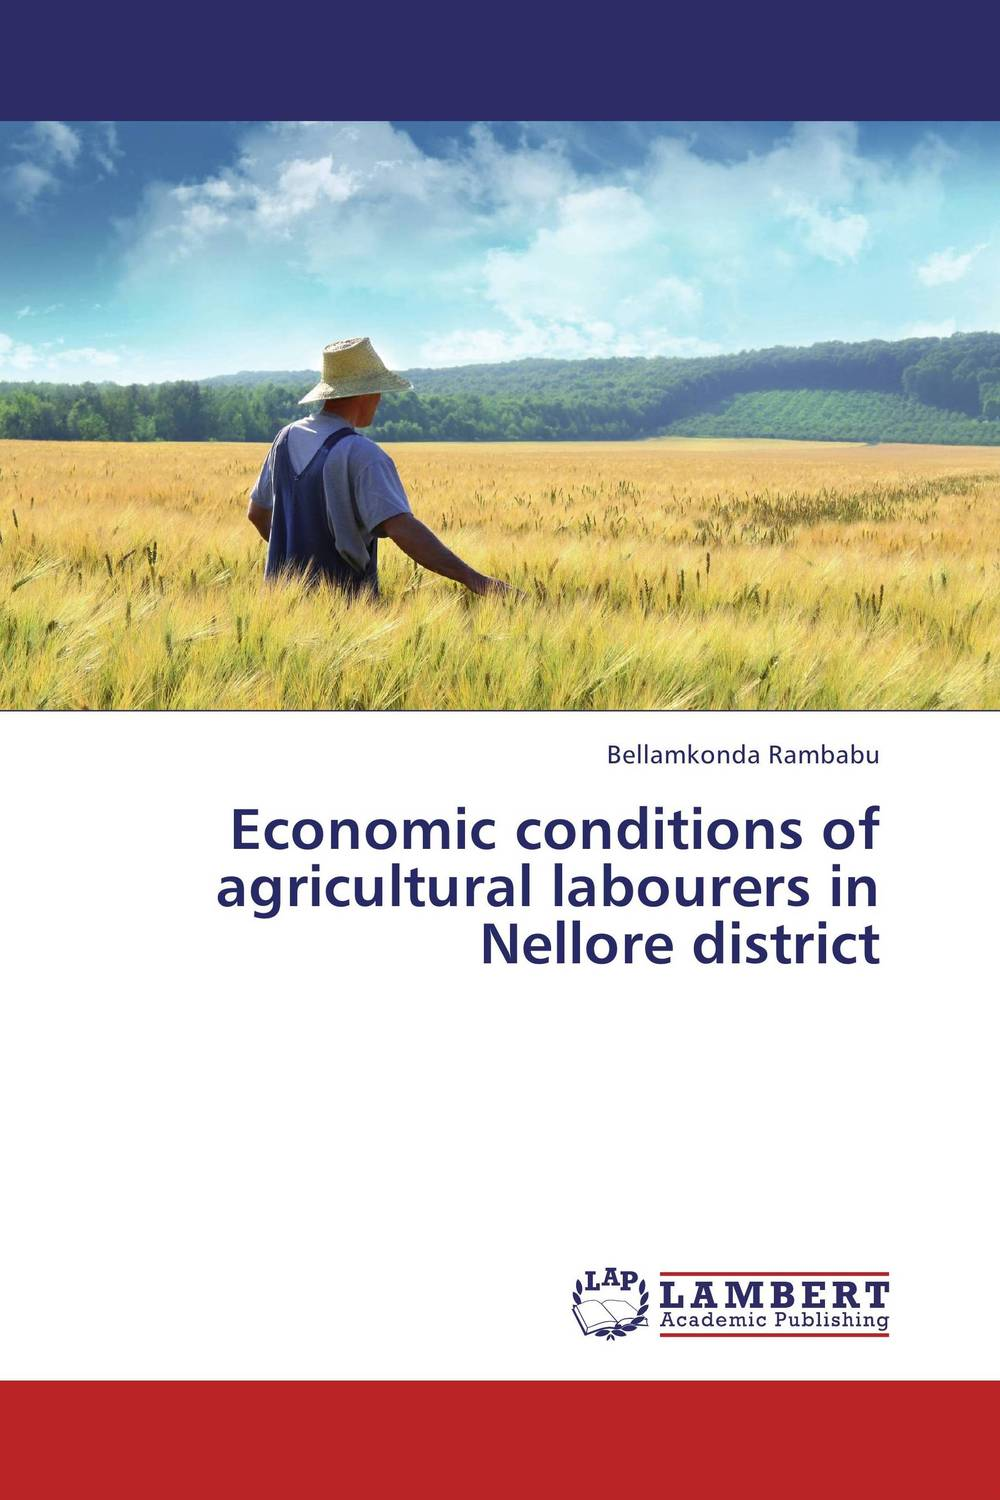 Economic conditions of agricultural labourers in Nellore district agricultural risk management in bikaner district of rajasthan